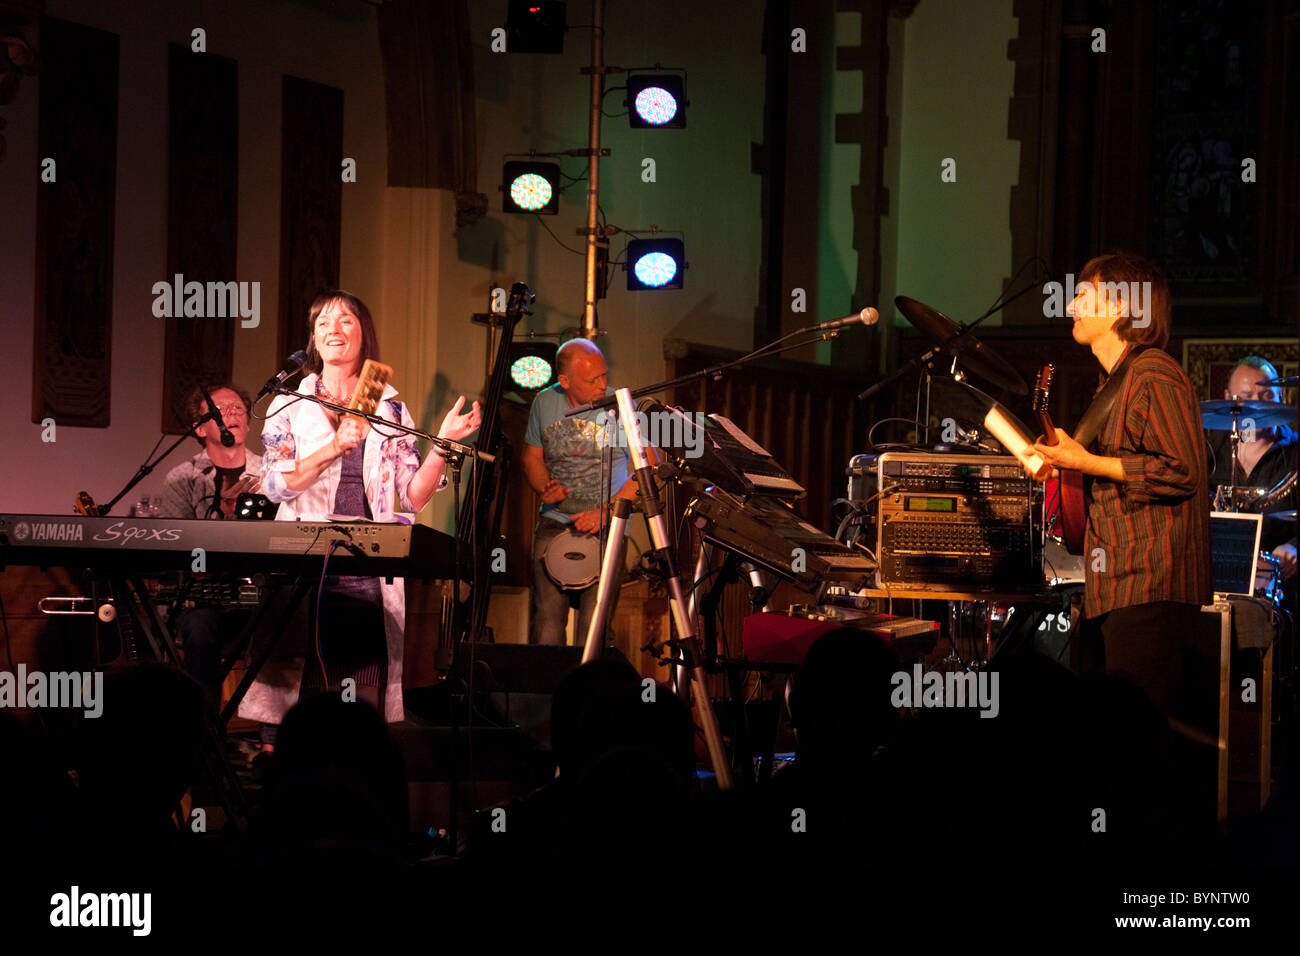 The Celtic Rock musical band Iona in concert in the UK, 2010 - Stock Image